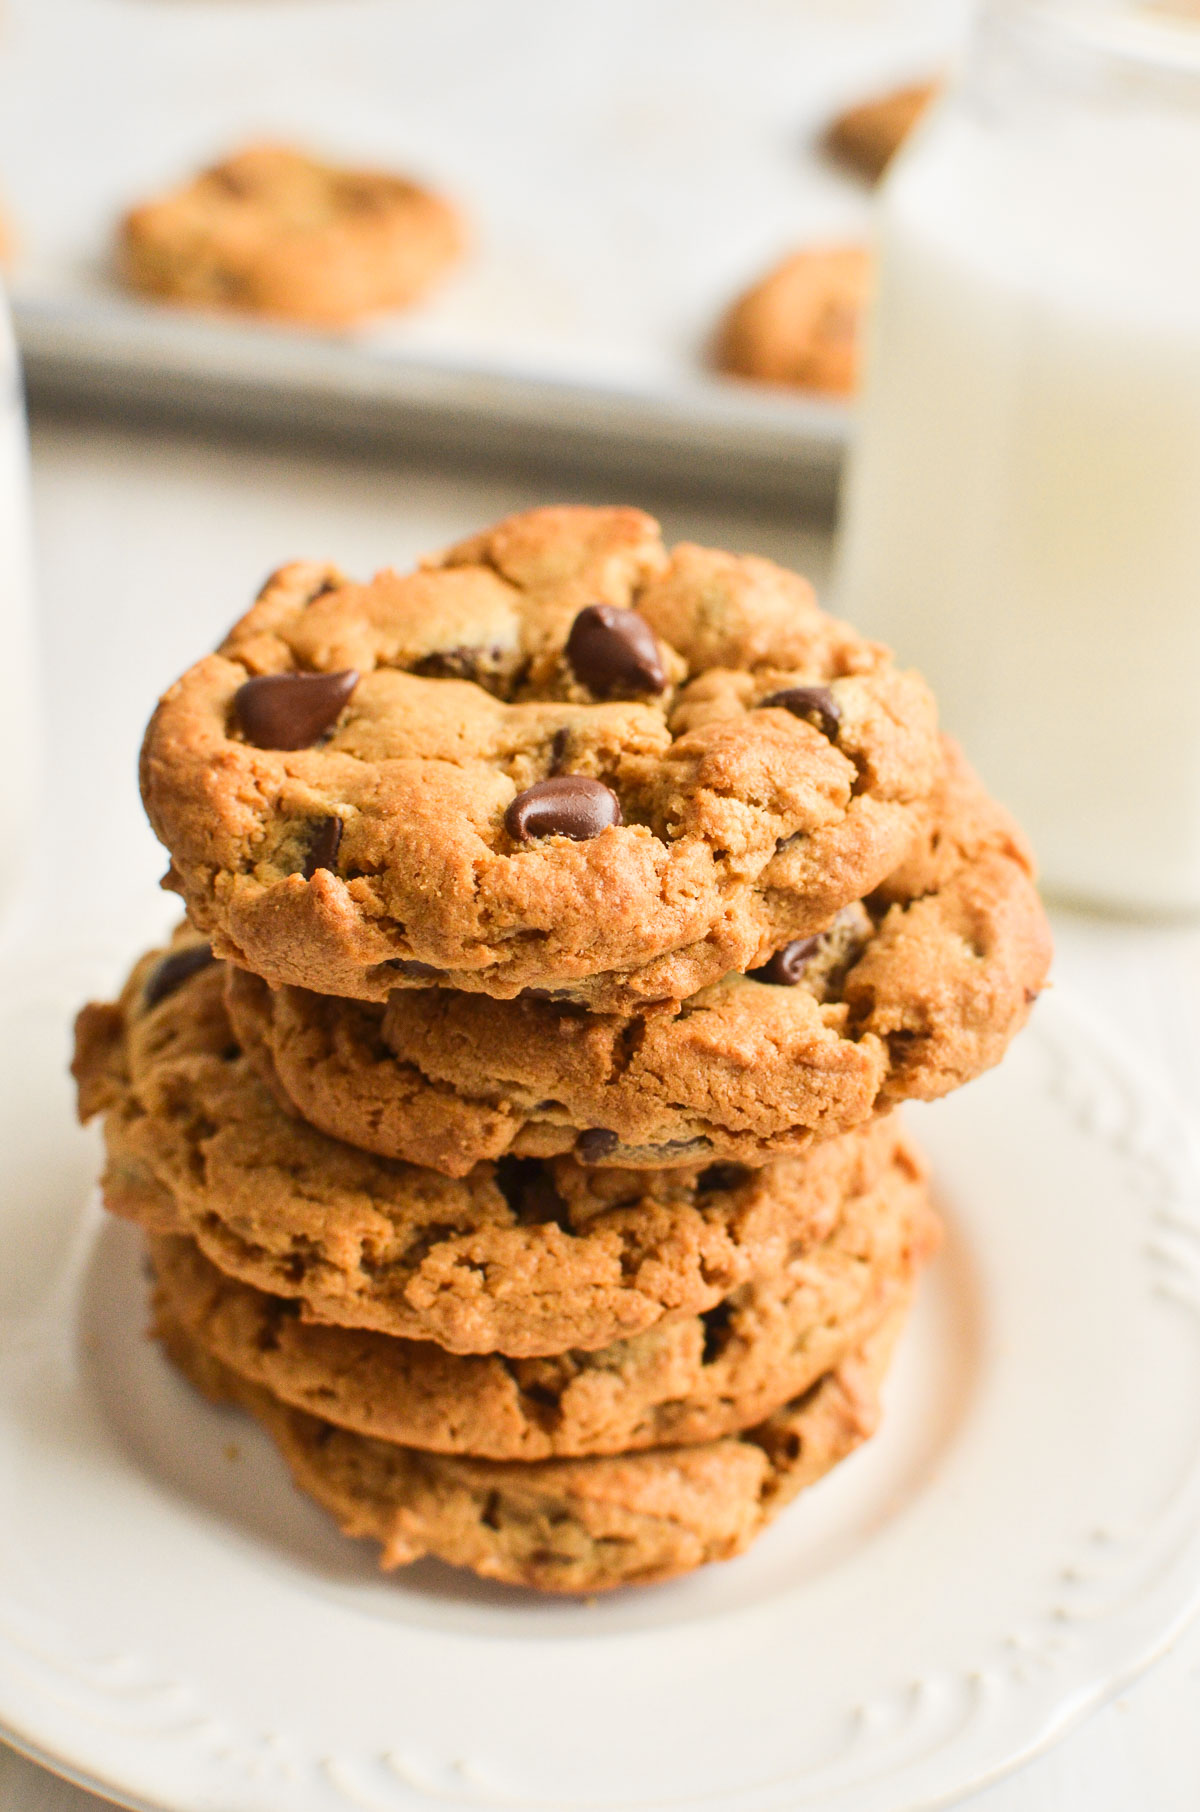 A stack of flourless peanut butter chocolate chip cookies on a white plate.